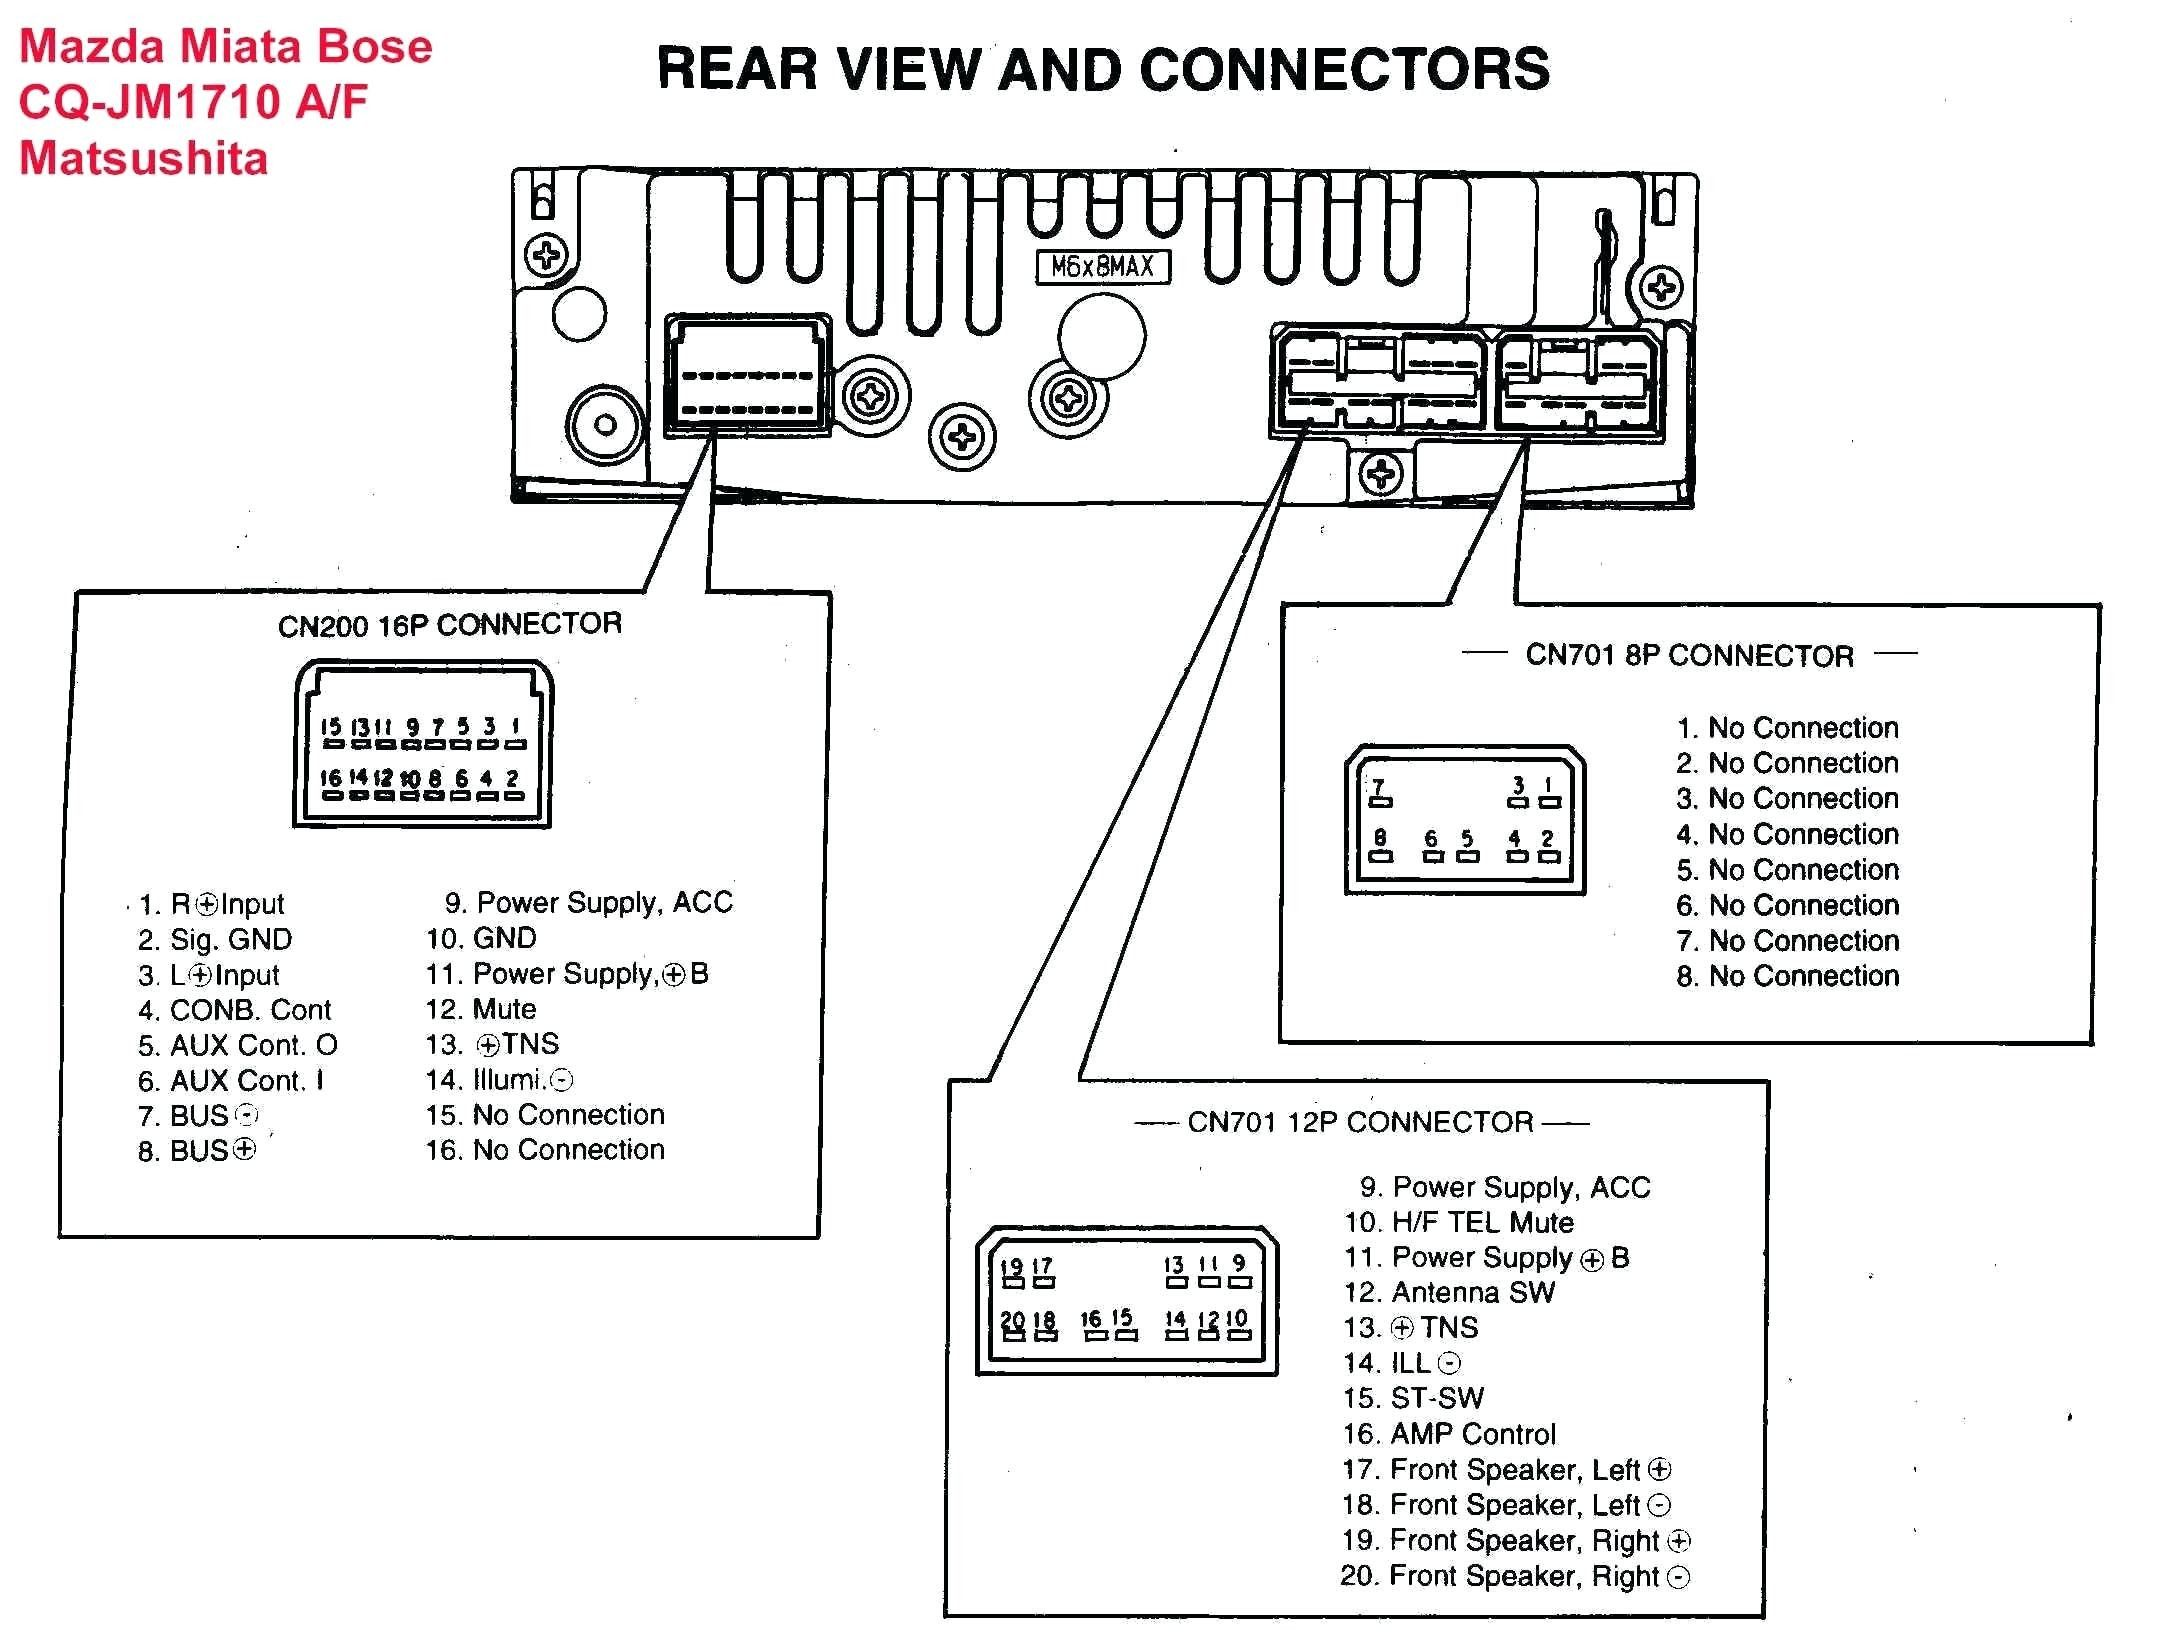 Sony Cdx M610 Wiring Diagram from i.pinimg.com